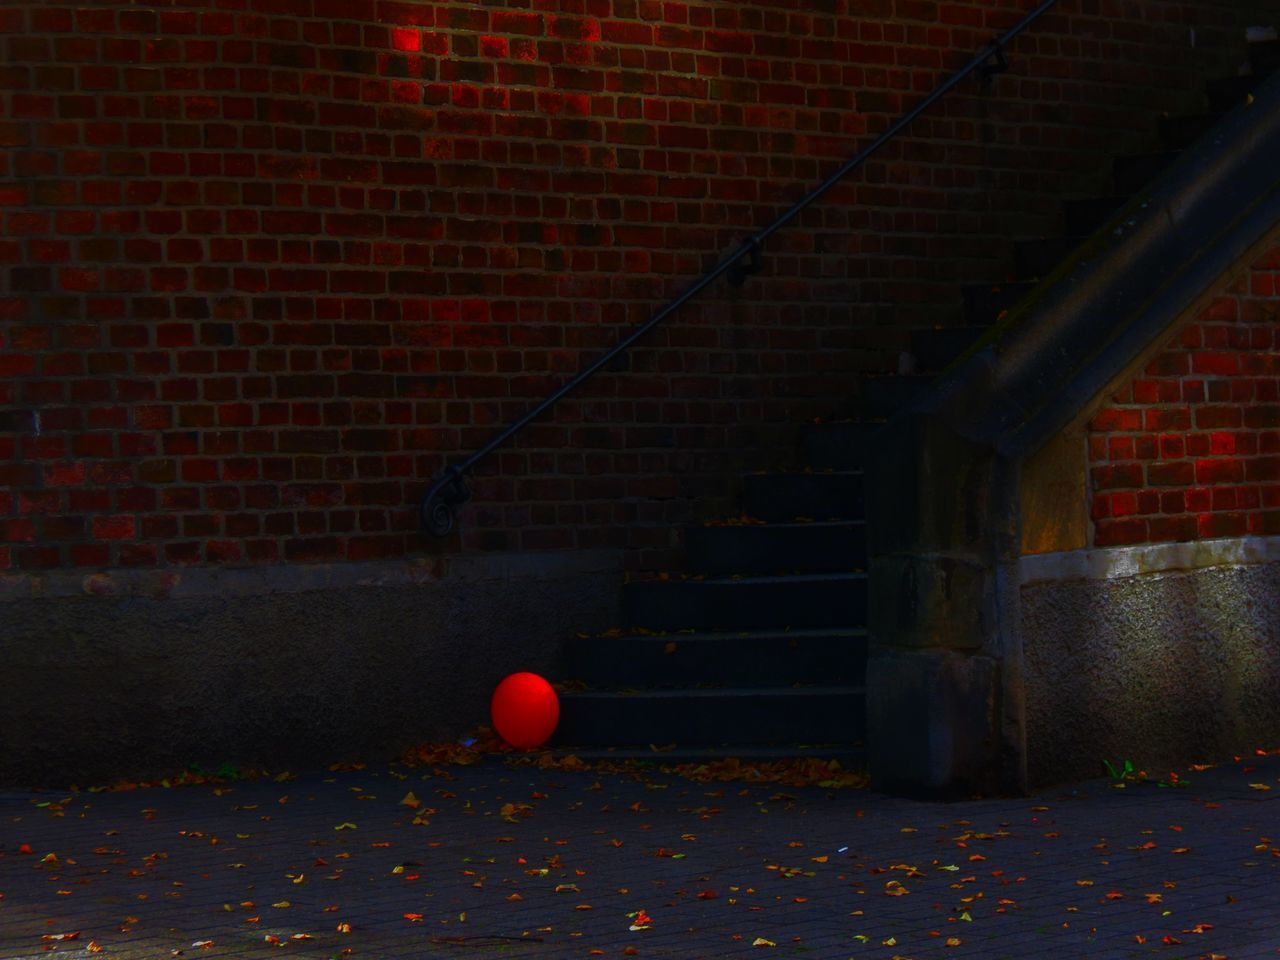 Ball Balloons Brick Wall Built Structure Red Red Balloon Stair Stairs